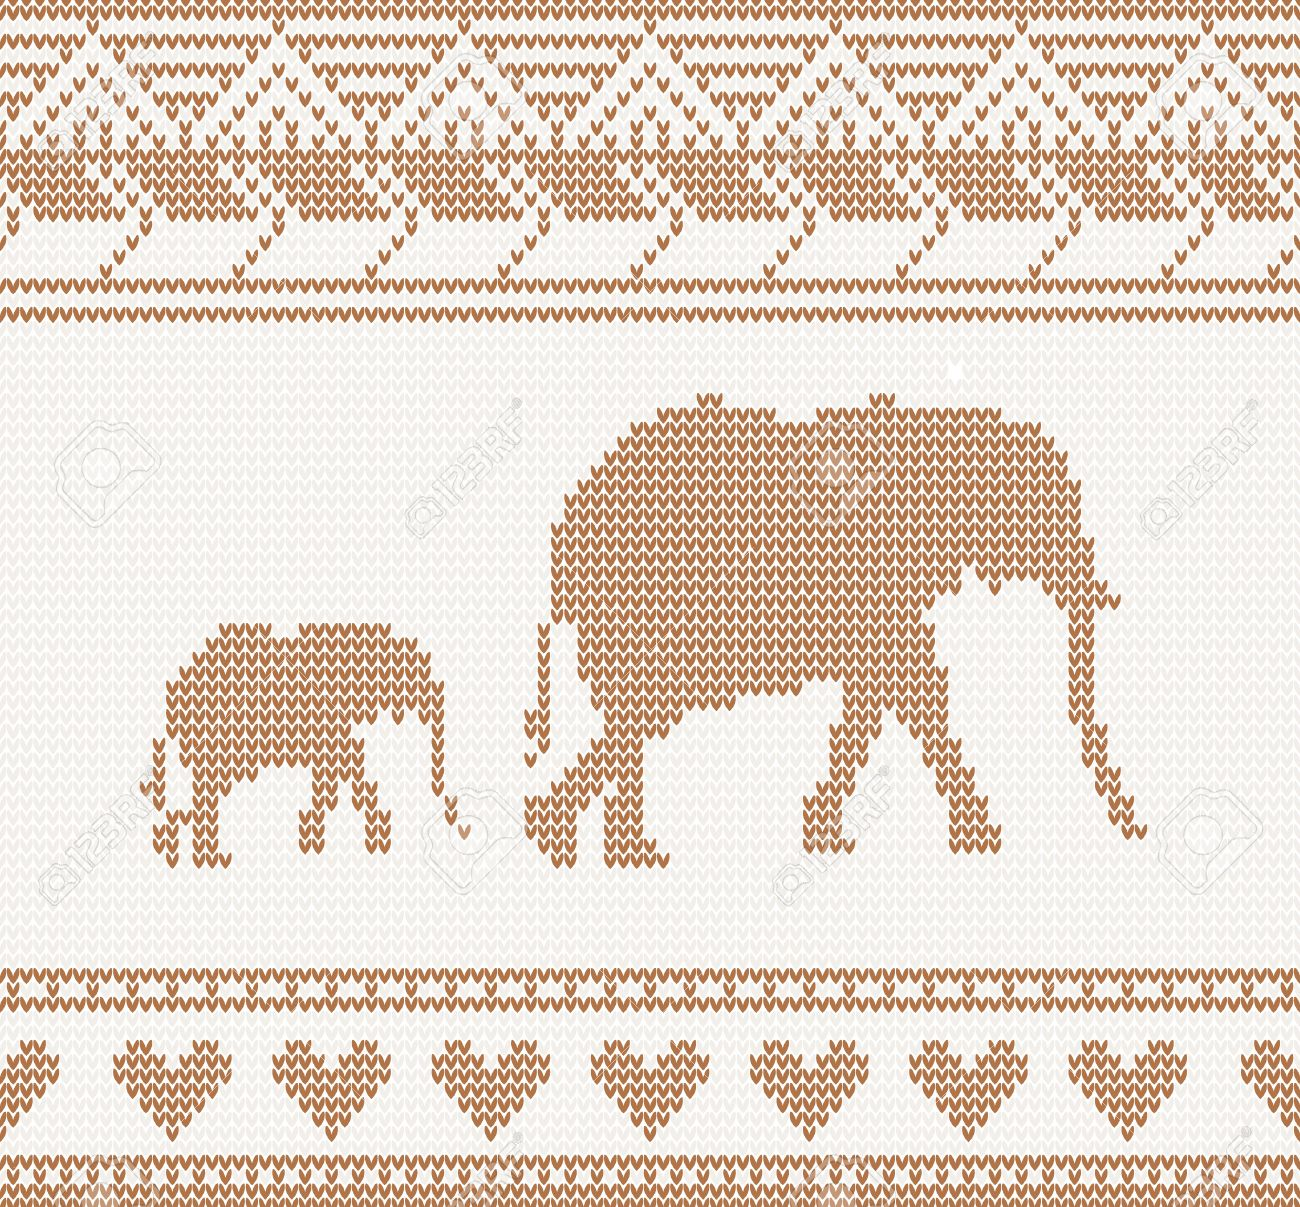 Knitted Pattern With Elephant Seamless Vector Illustration Royalty ...